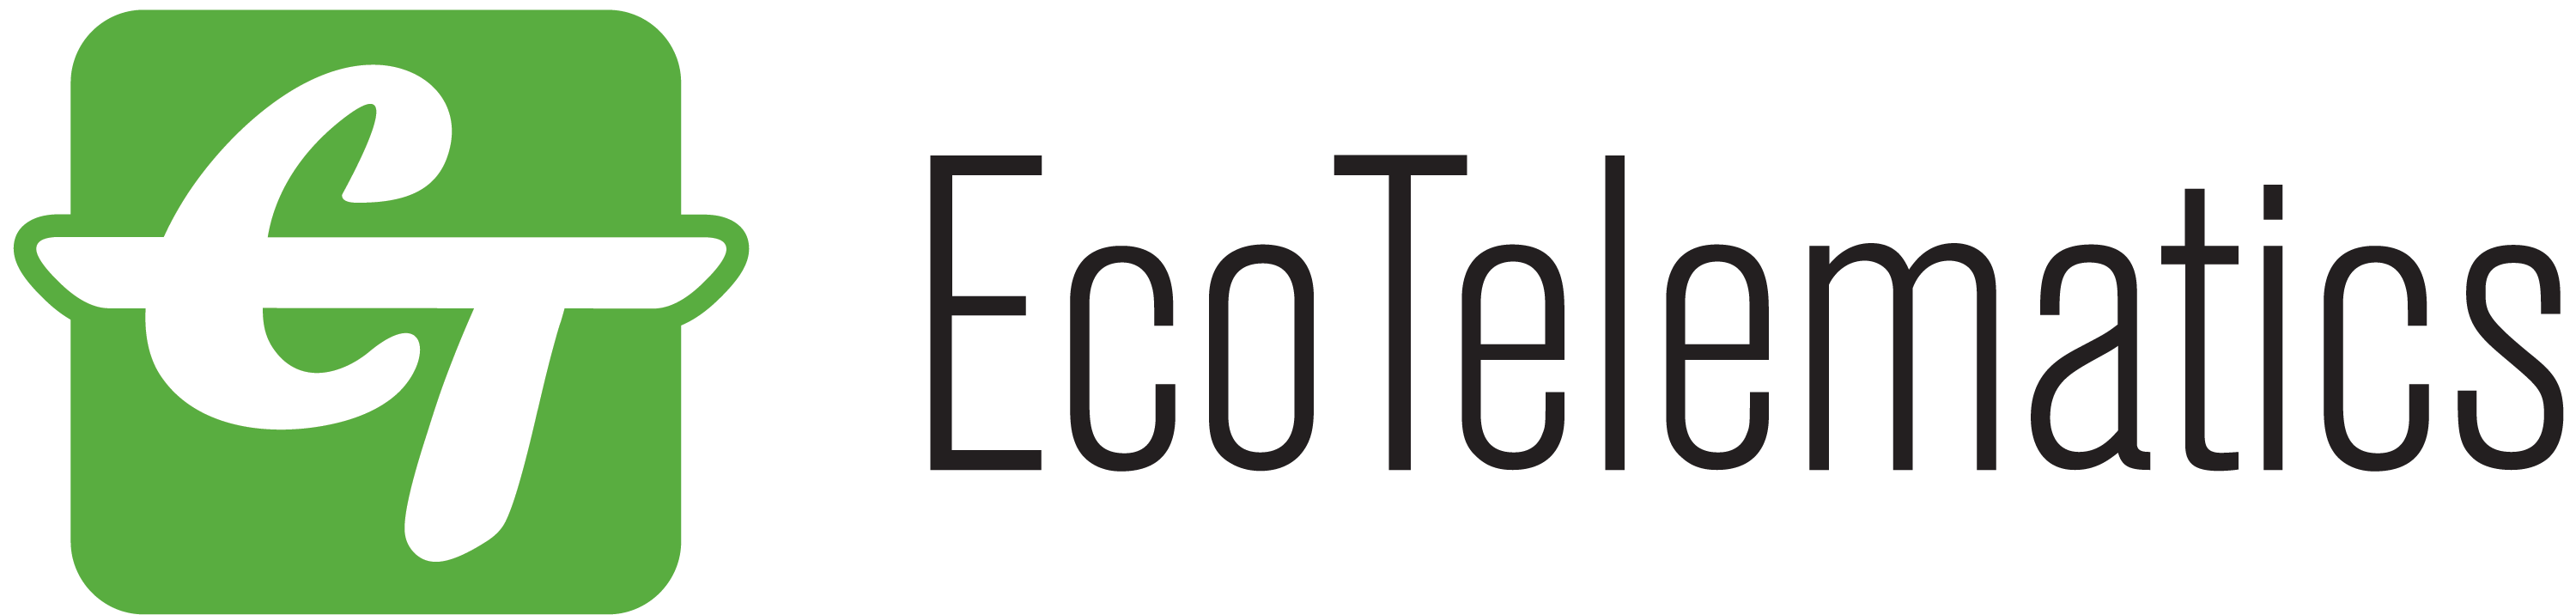 Eco Telematics DEAC